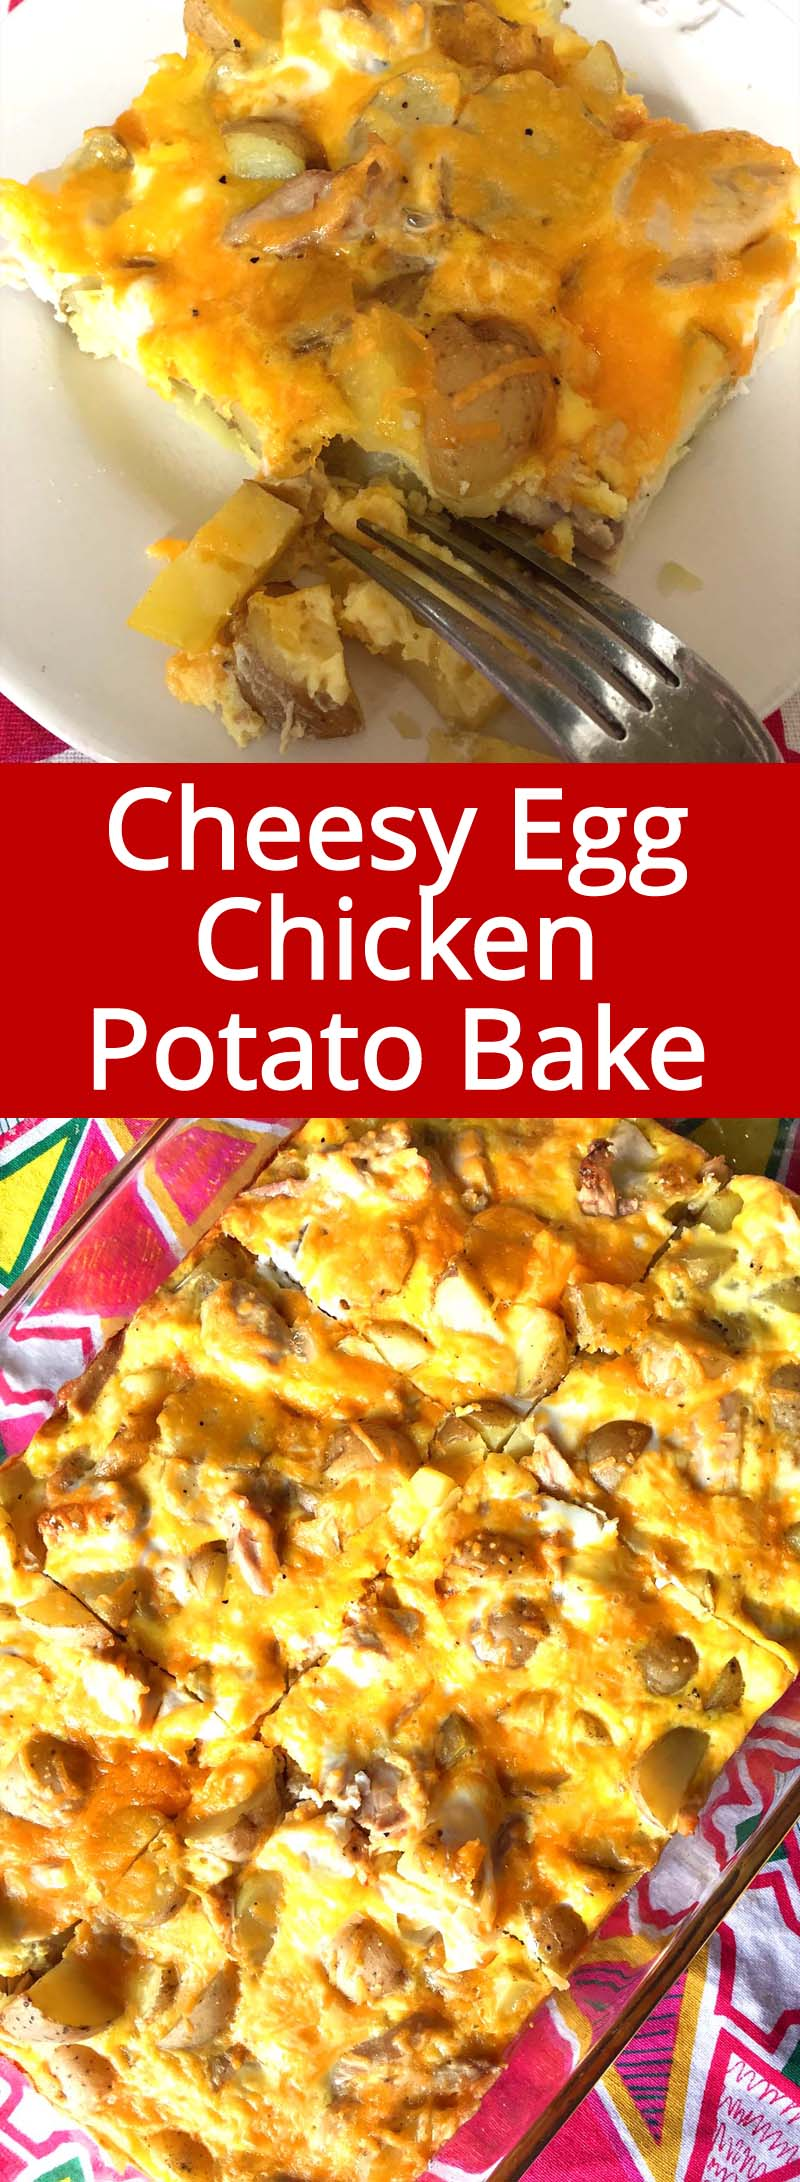 Eggs + Potatoes + Chicken + Cheese = YUM! This breakfast casserole bake is so filling and delicious!